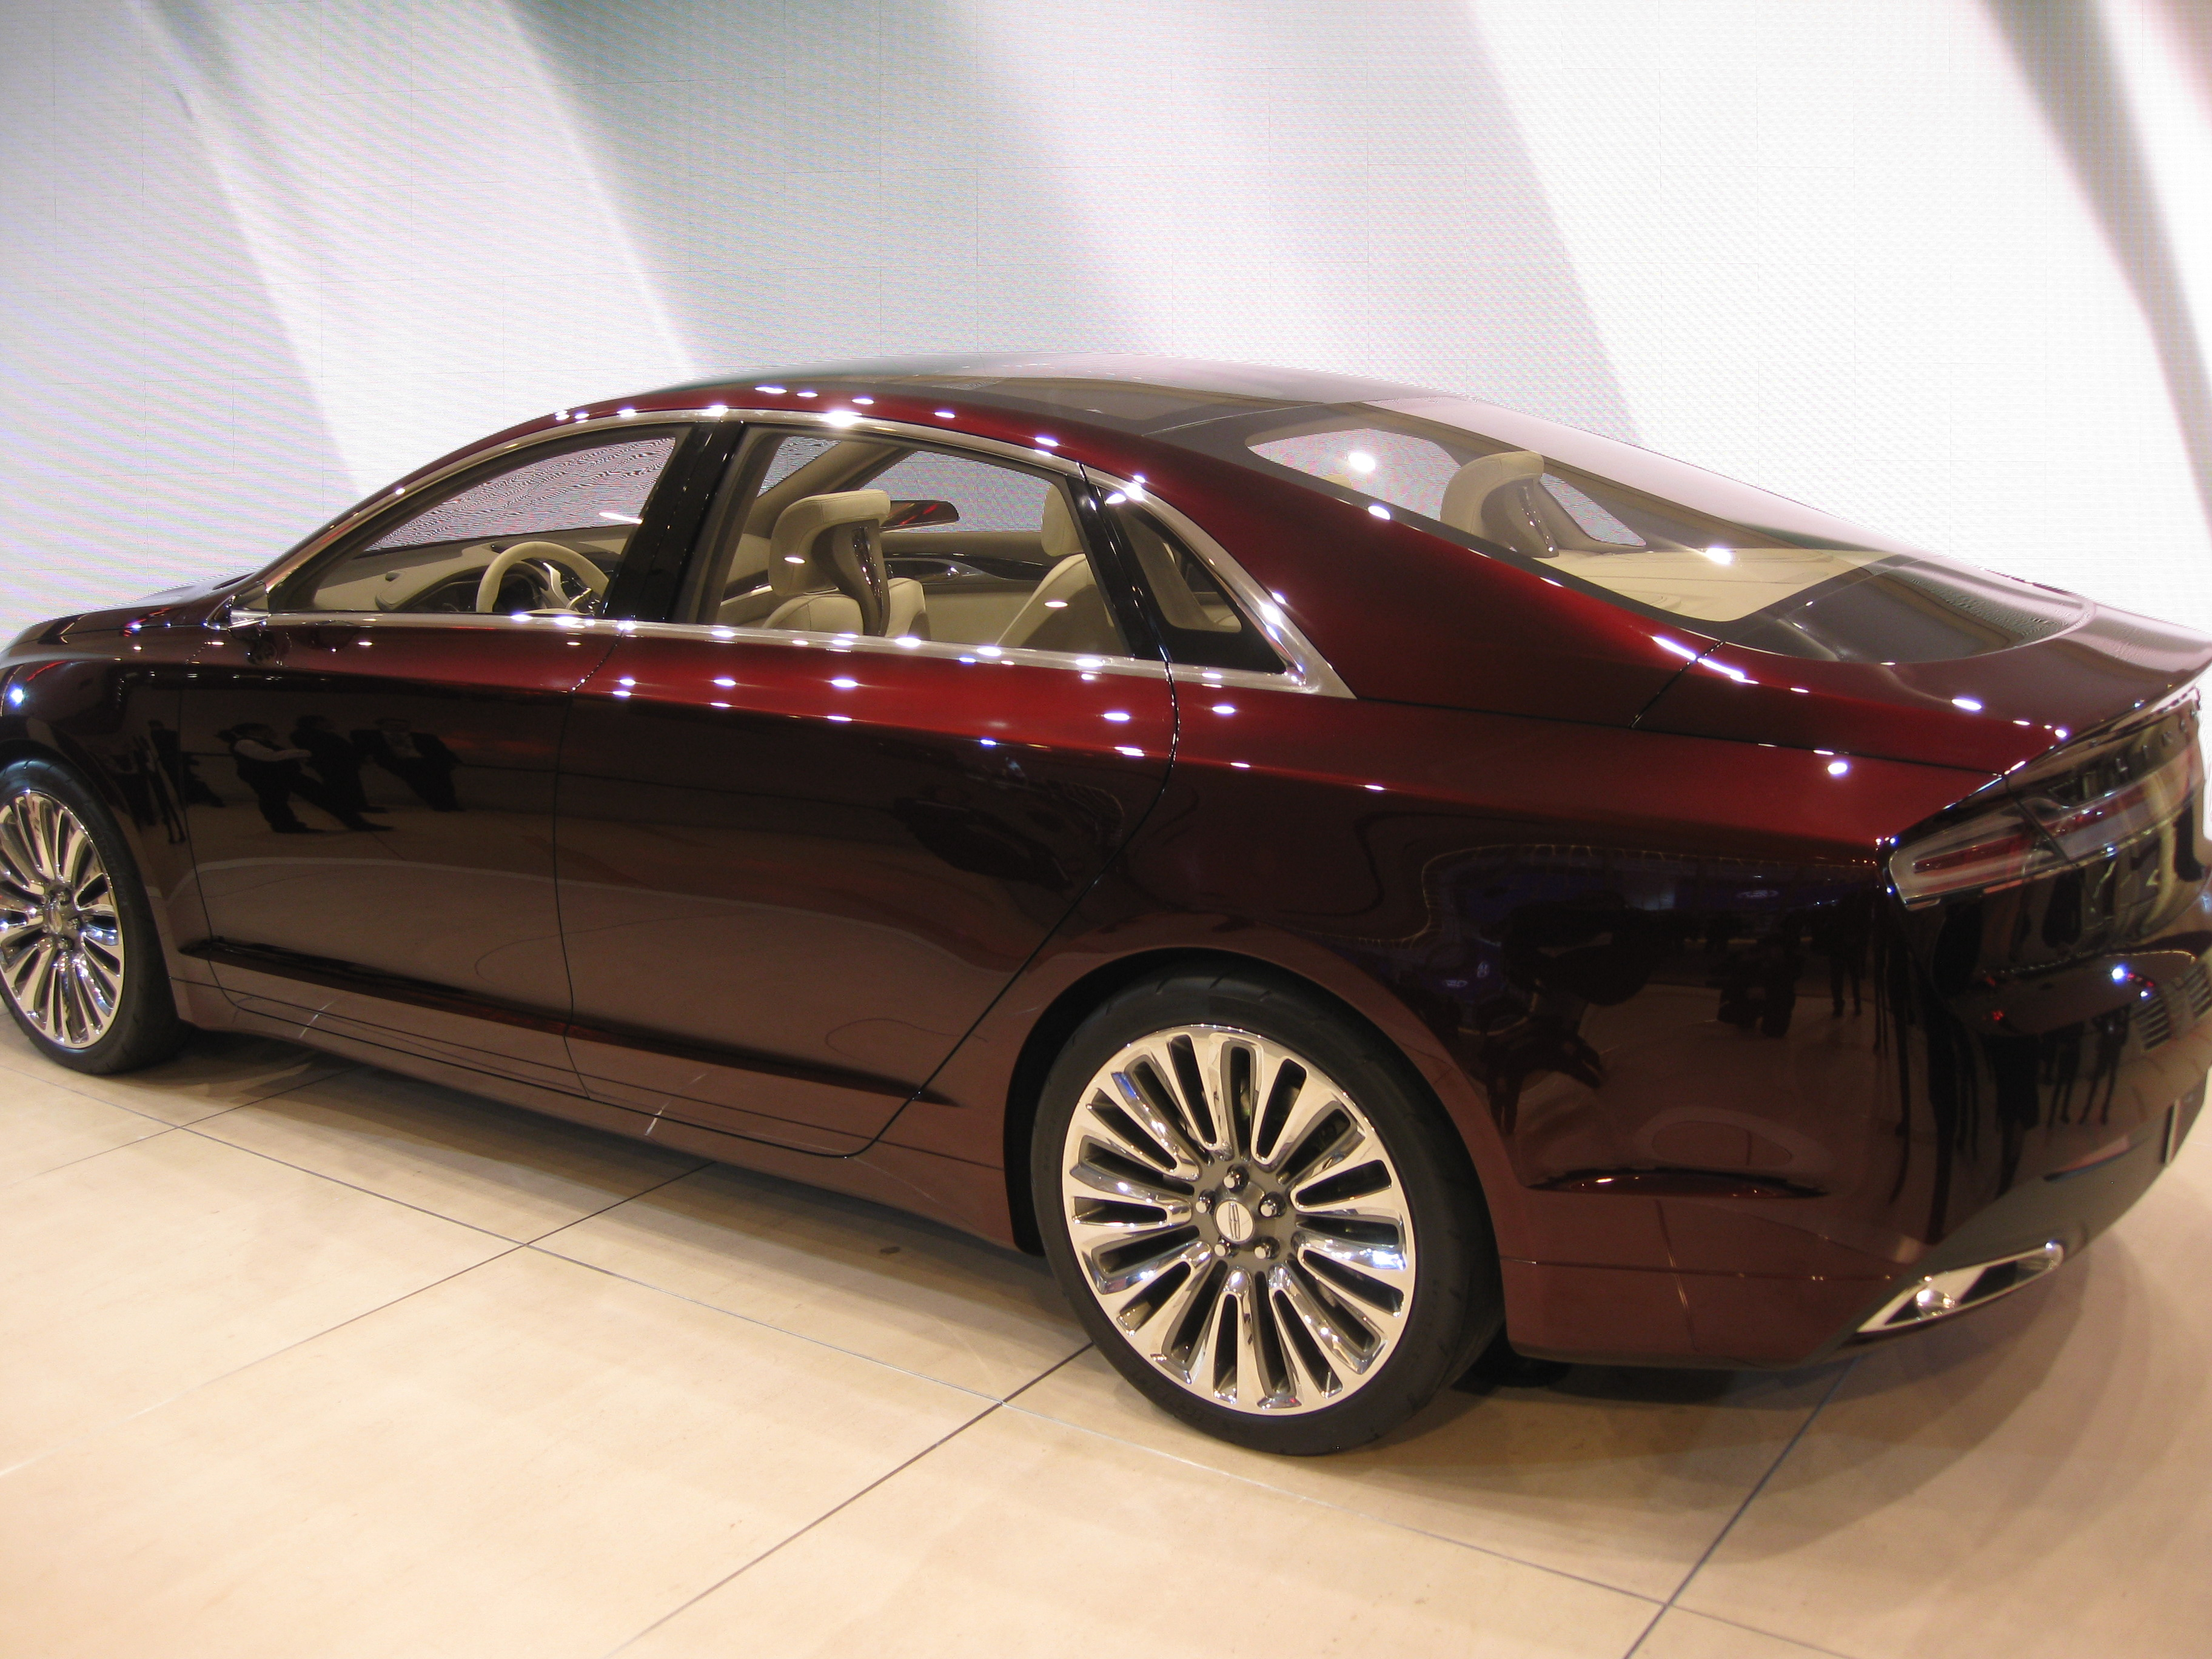 https://upload.wikimedia.org/wikipedia/commons/2/23/Lincoln_MKZ_Concept_at_NAIAS_2012_%286679774509%29.jpg